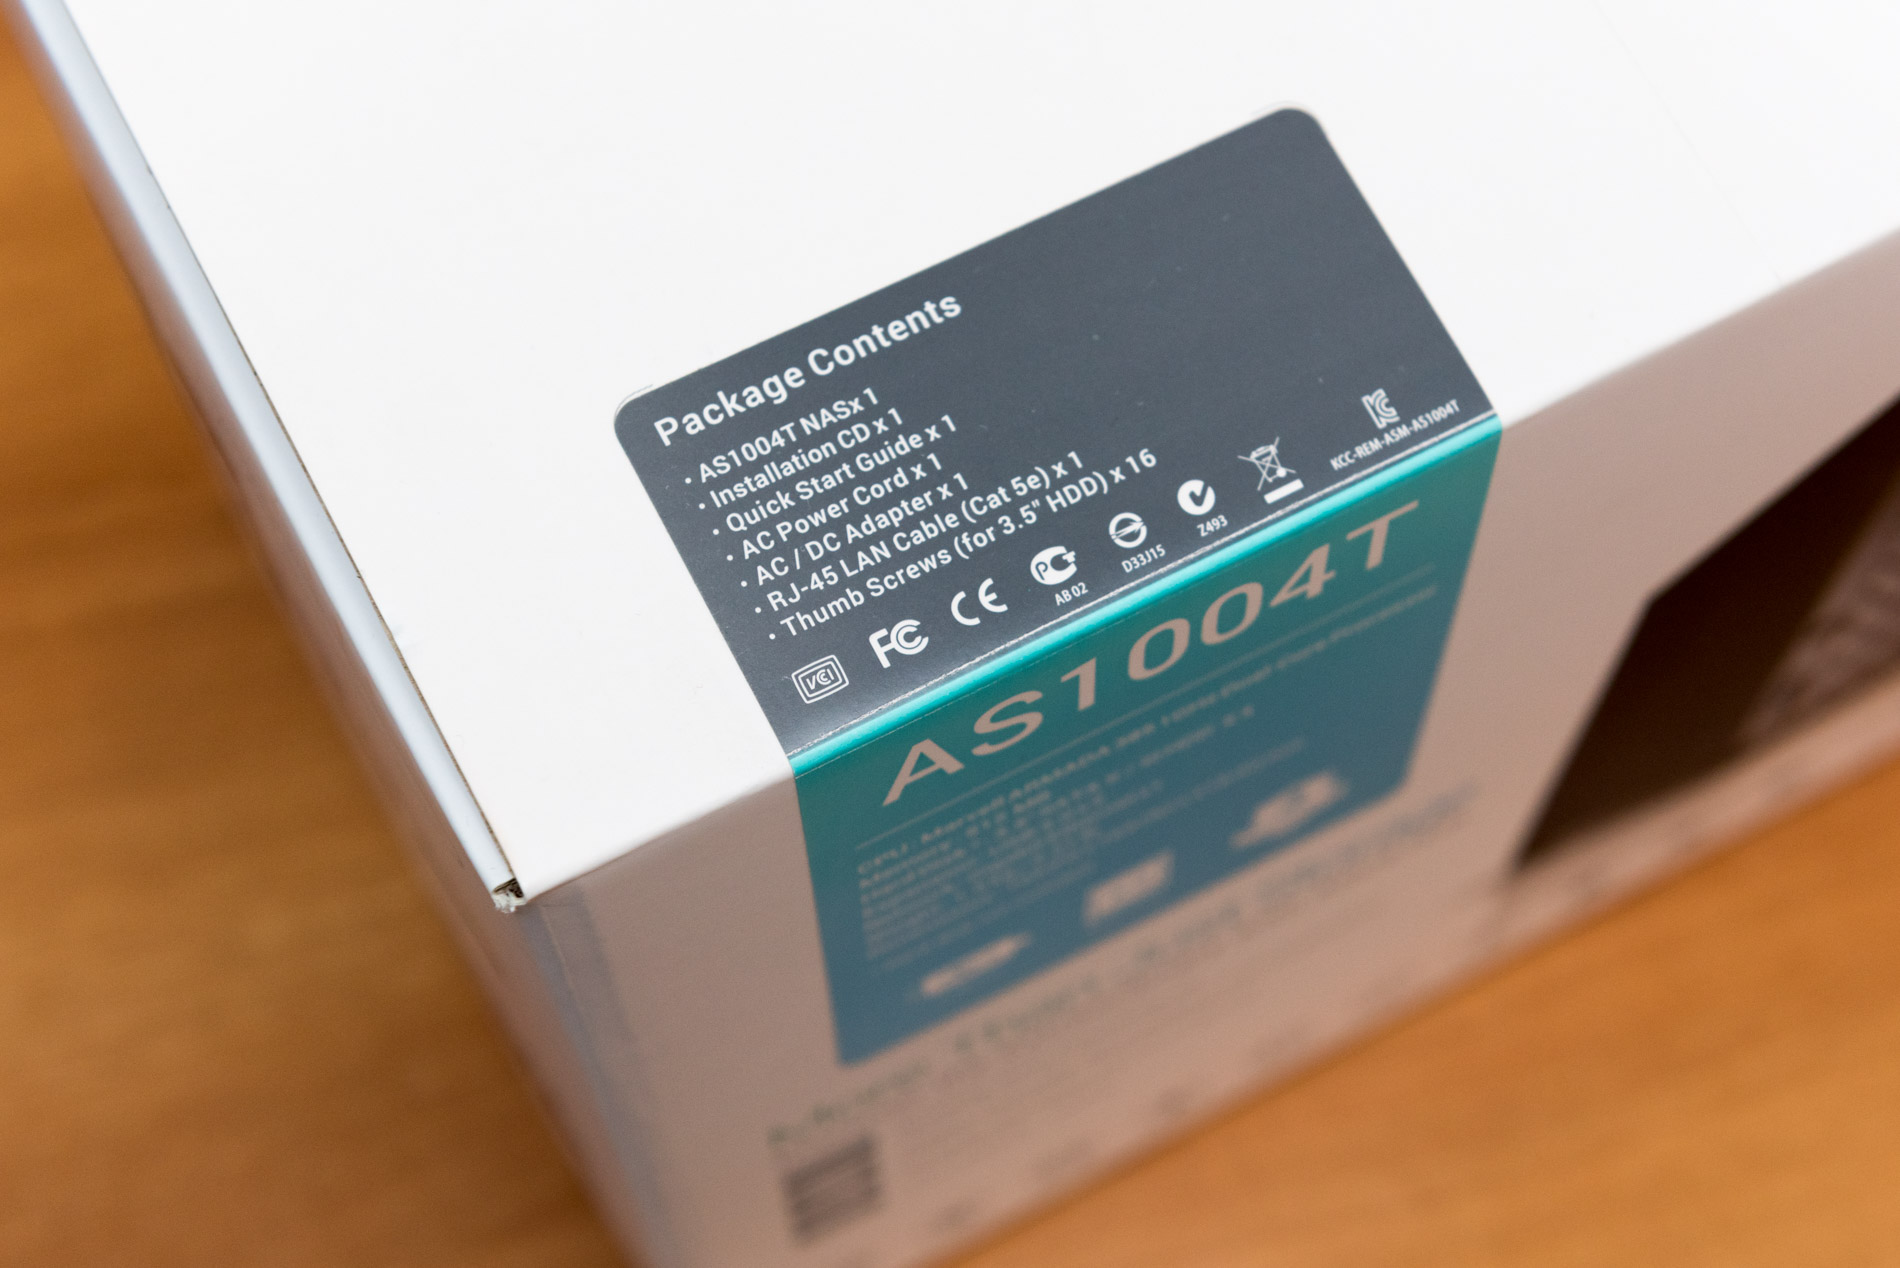 Unboxing AS1004T NAS